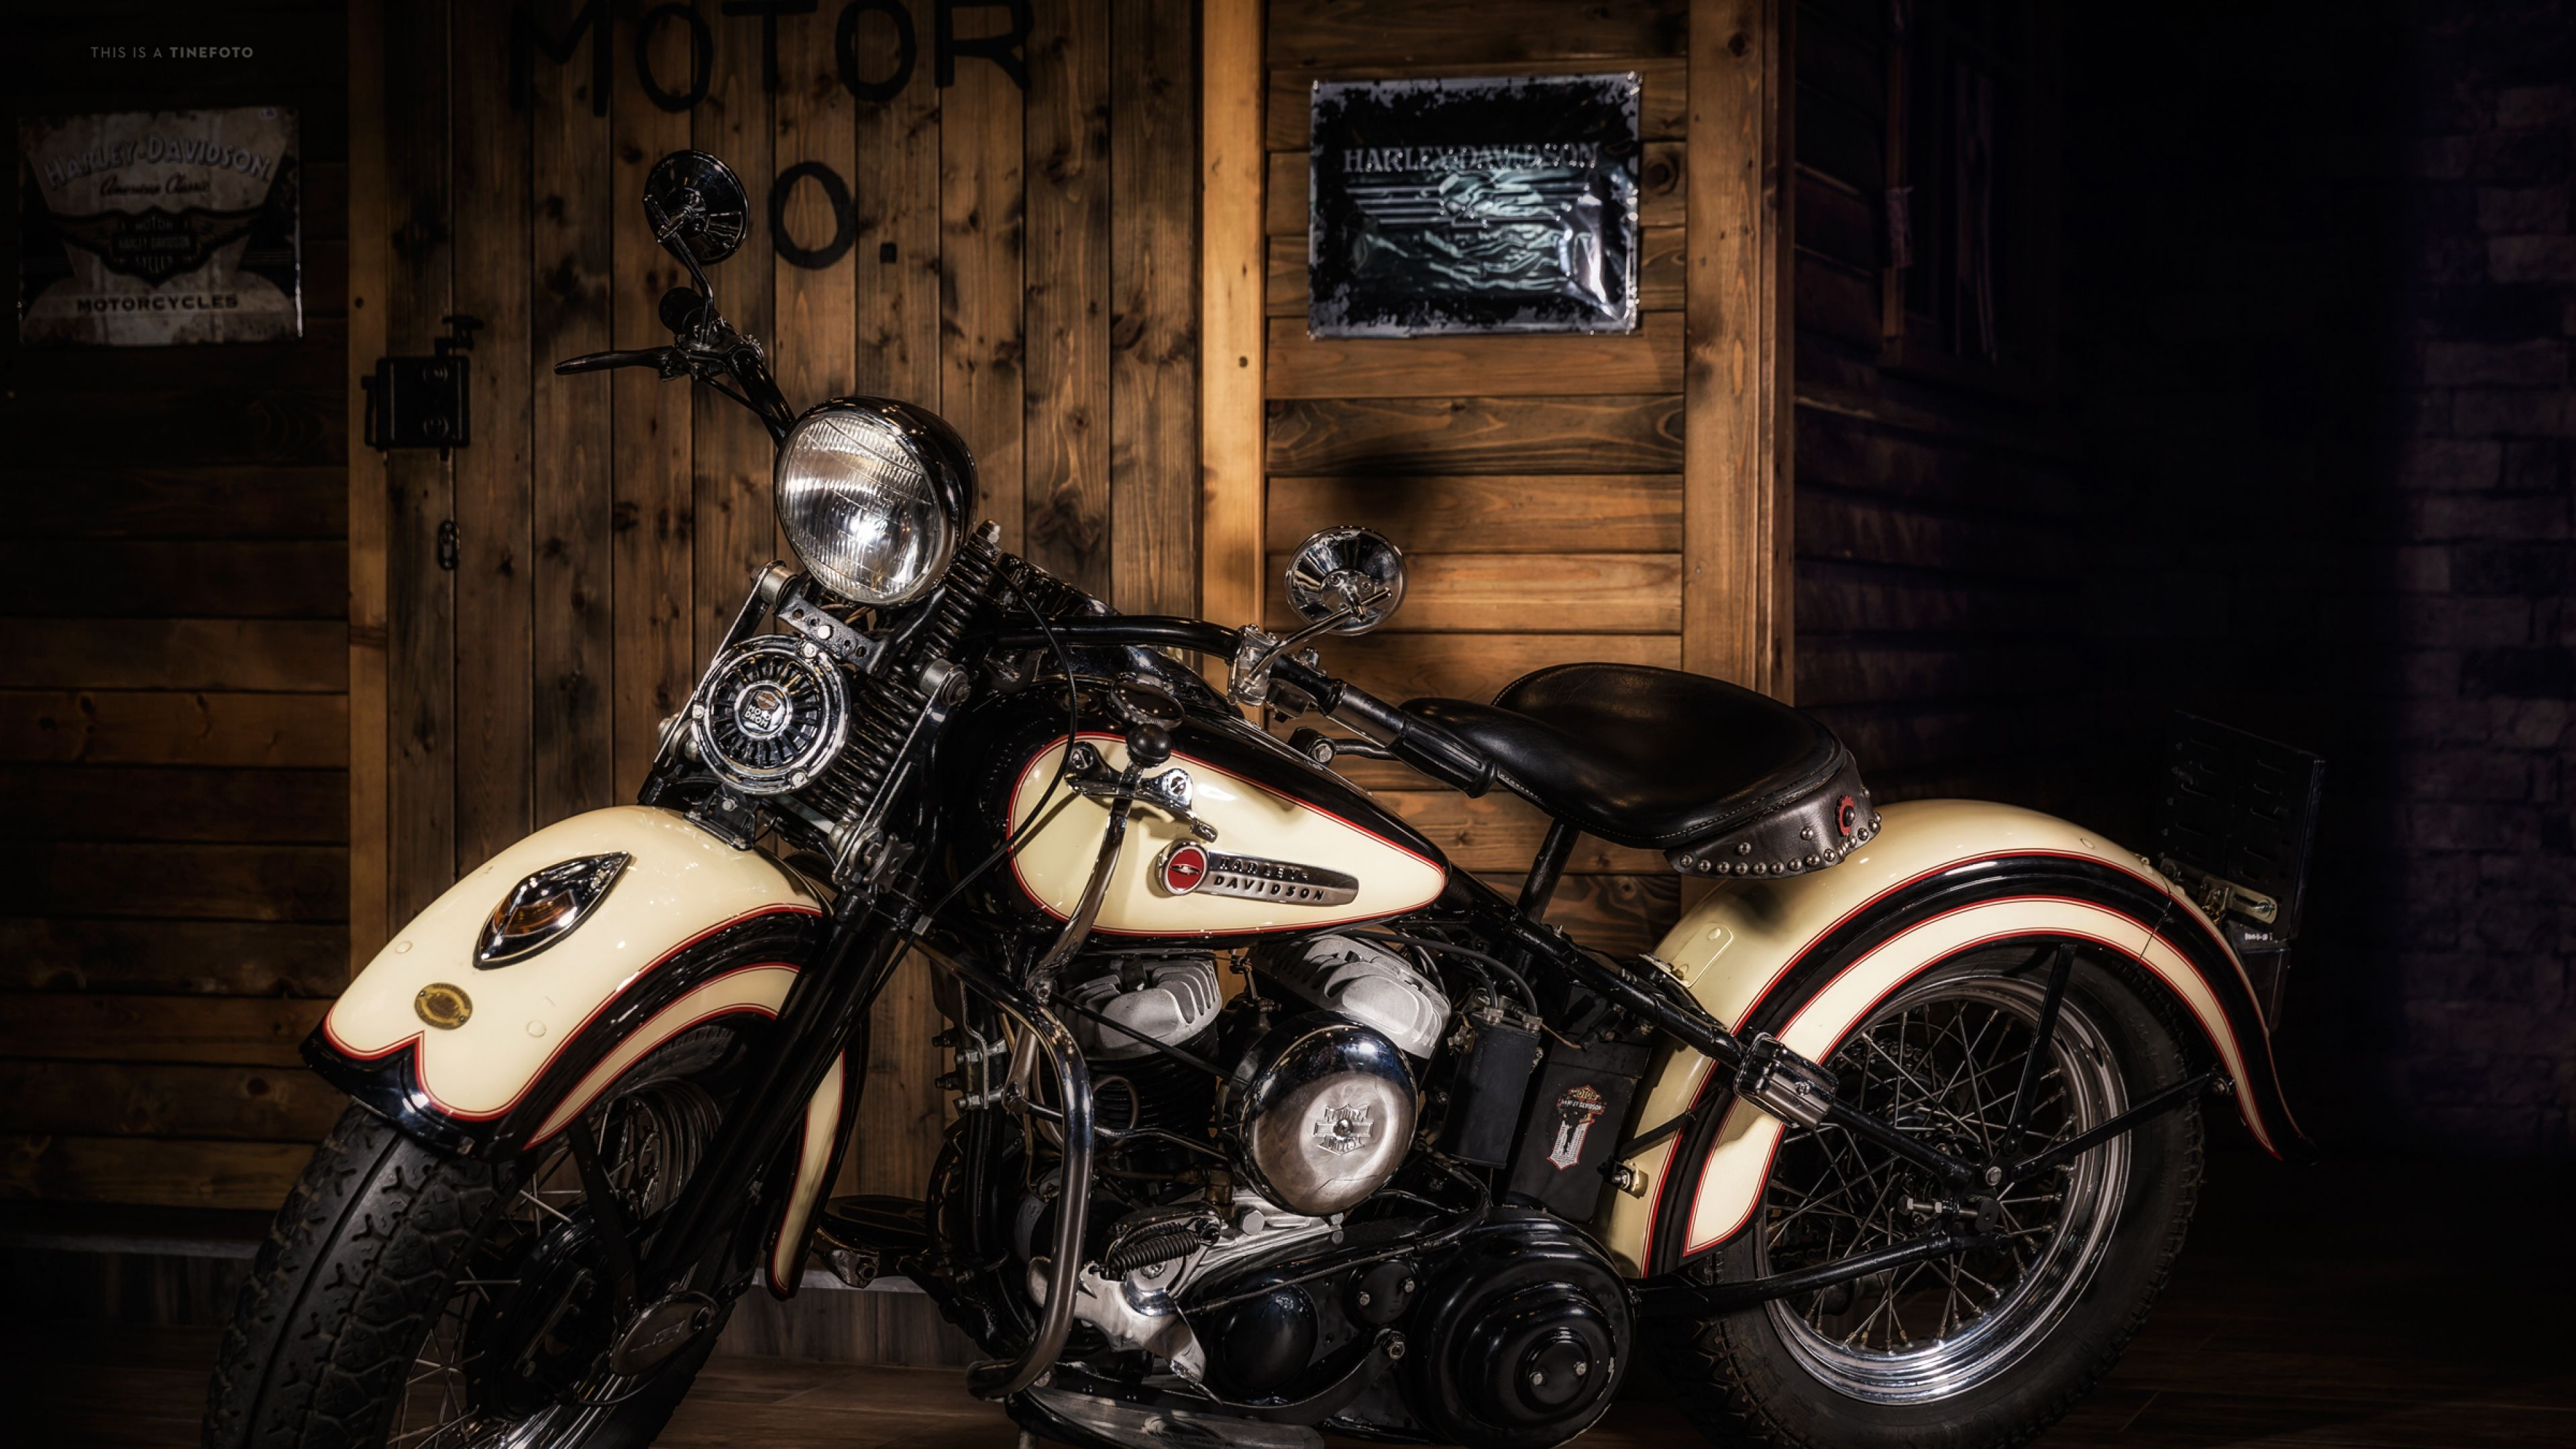 Images, Wallpapers Of Harley Davidson In HD Quality